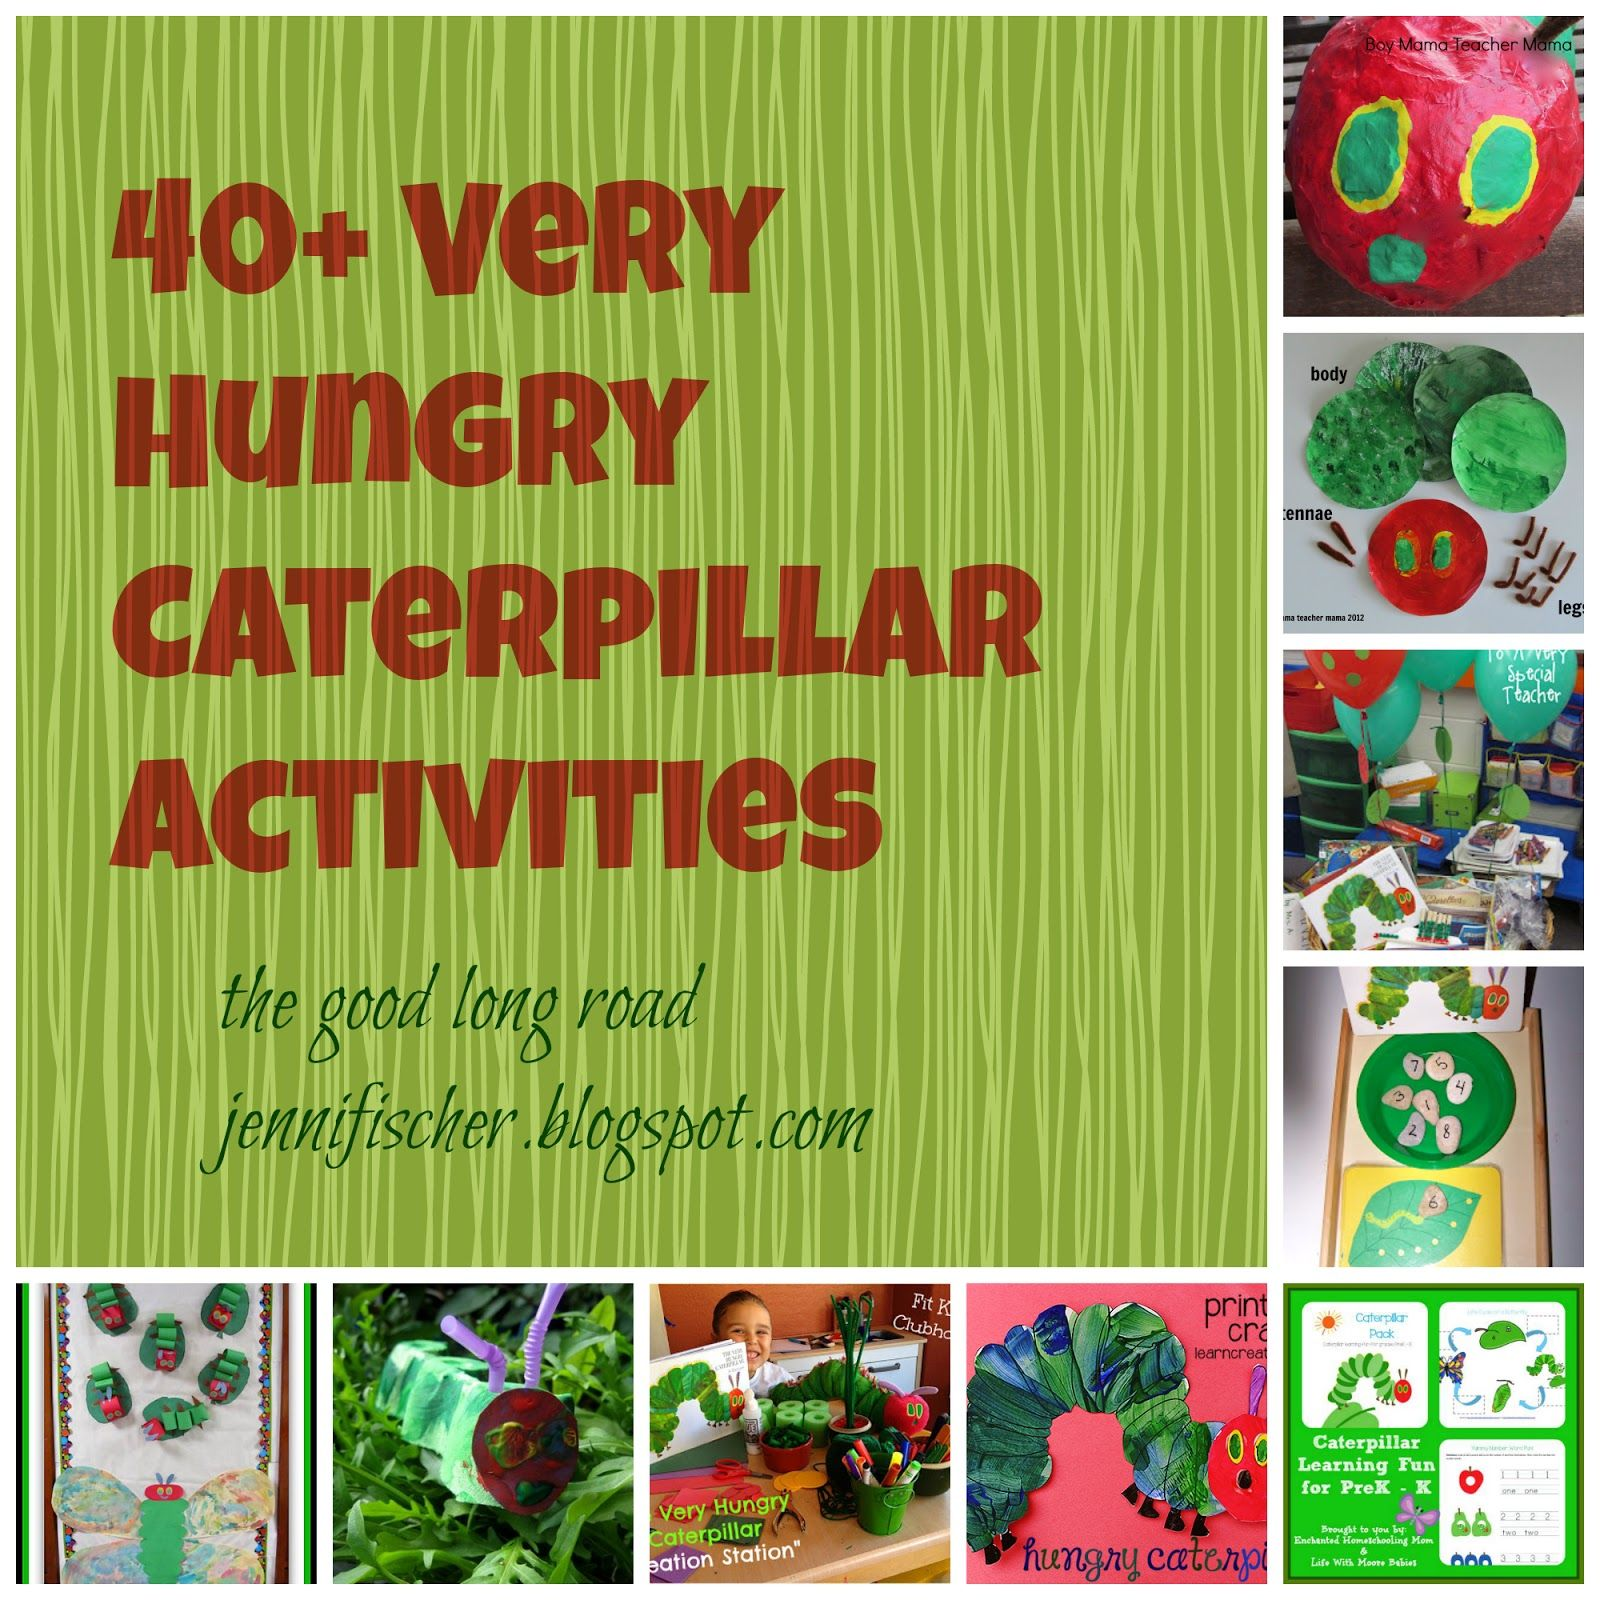 Get Excited About The Very Hungry Caterpillar Virtual Food Drive To Help Very Hungry Kids With